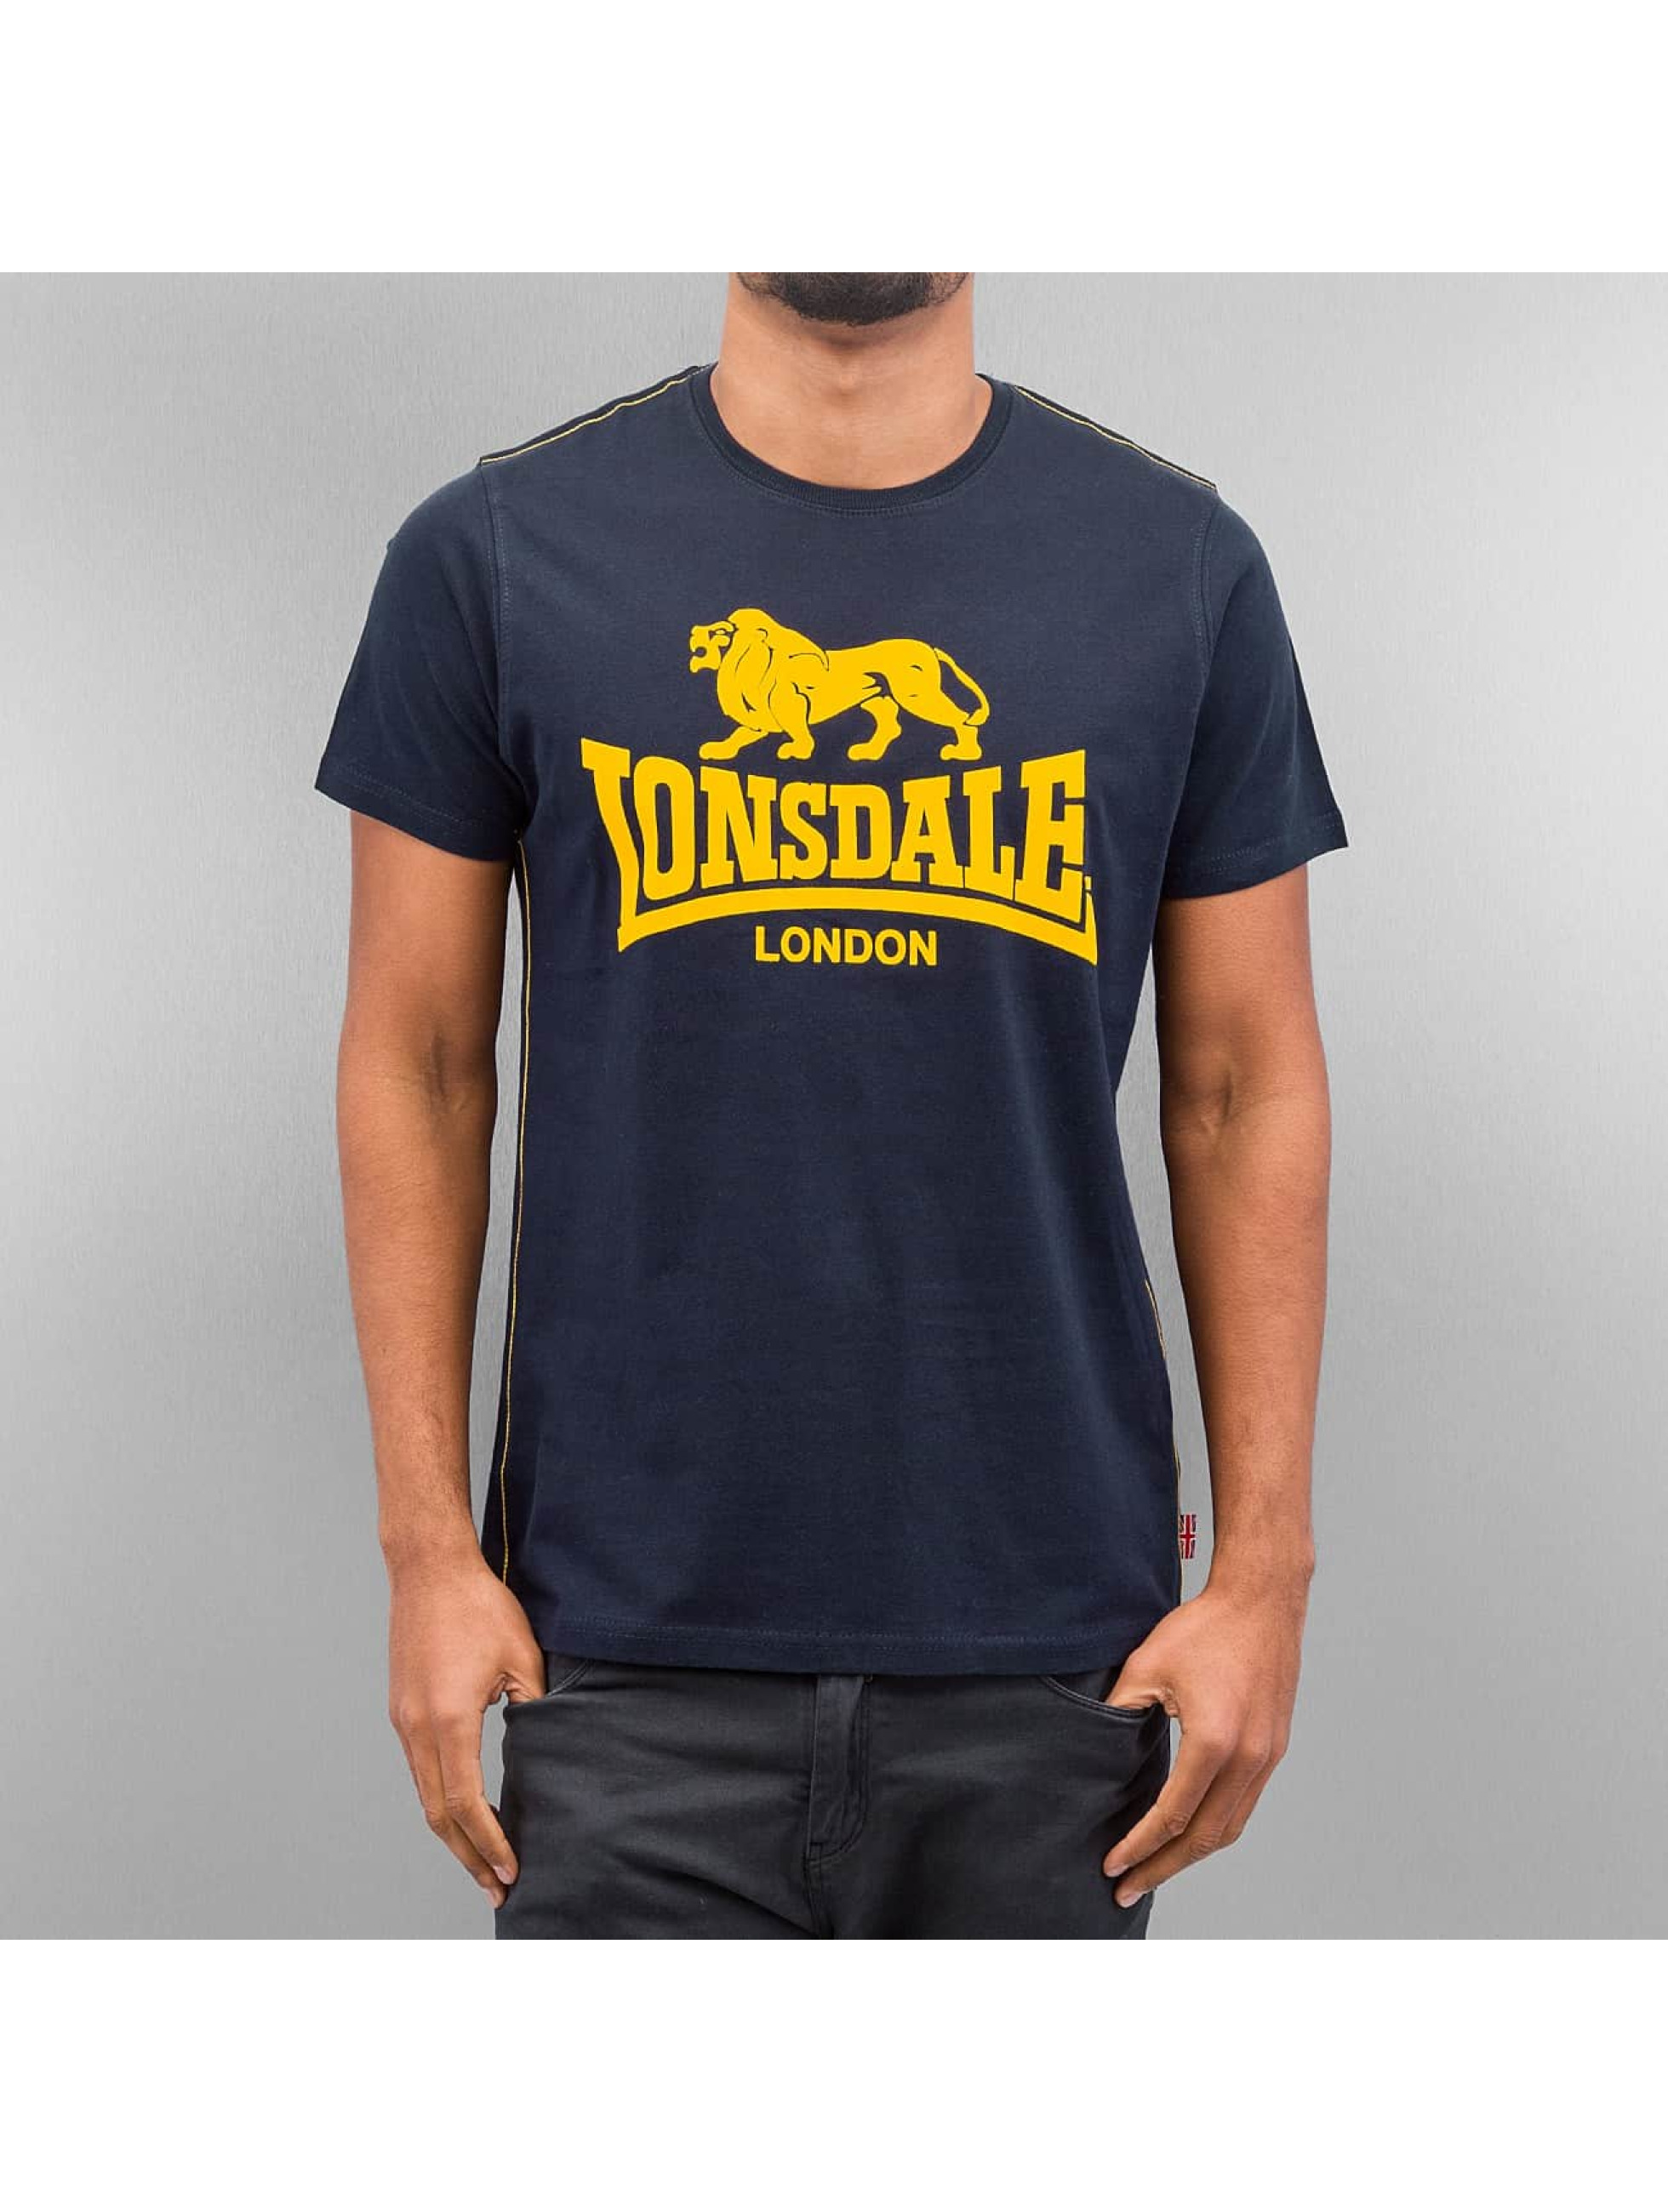 lonsdale london t shirt smith reloaded in blau 98535. Black Bedroom Furniture Sets. Home Design Ideas